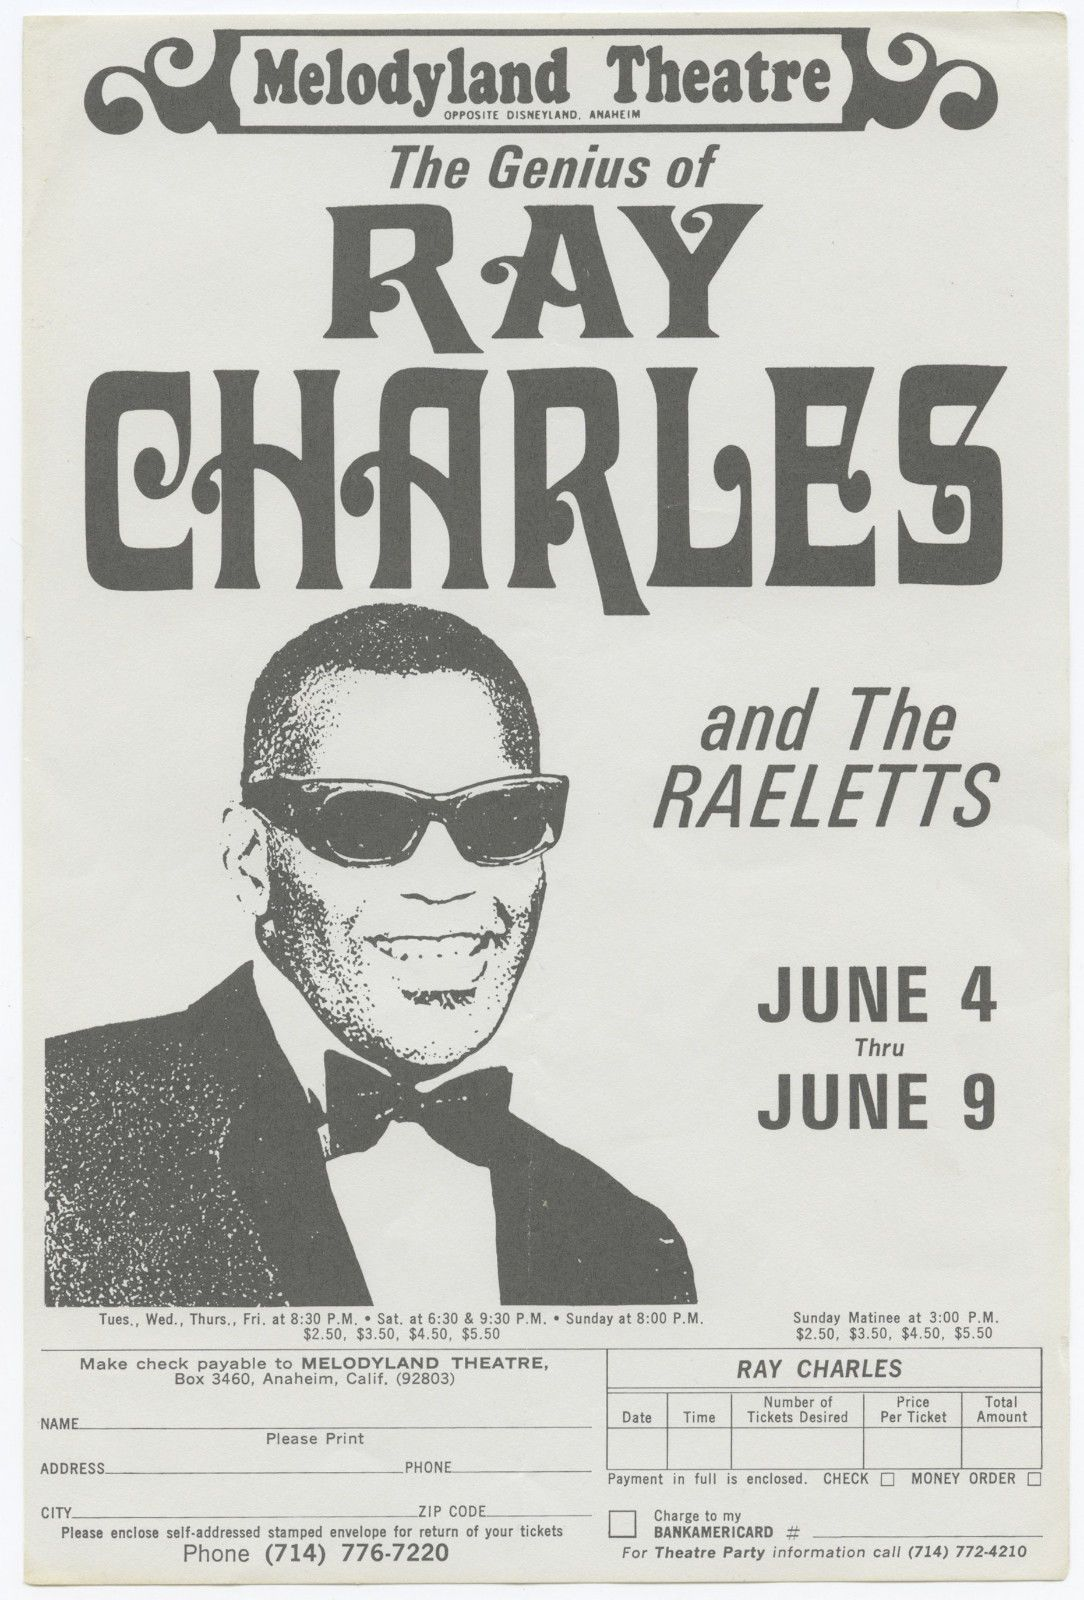 Poster for a Ray Charles concert series at the Melodyland Theatre in